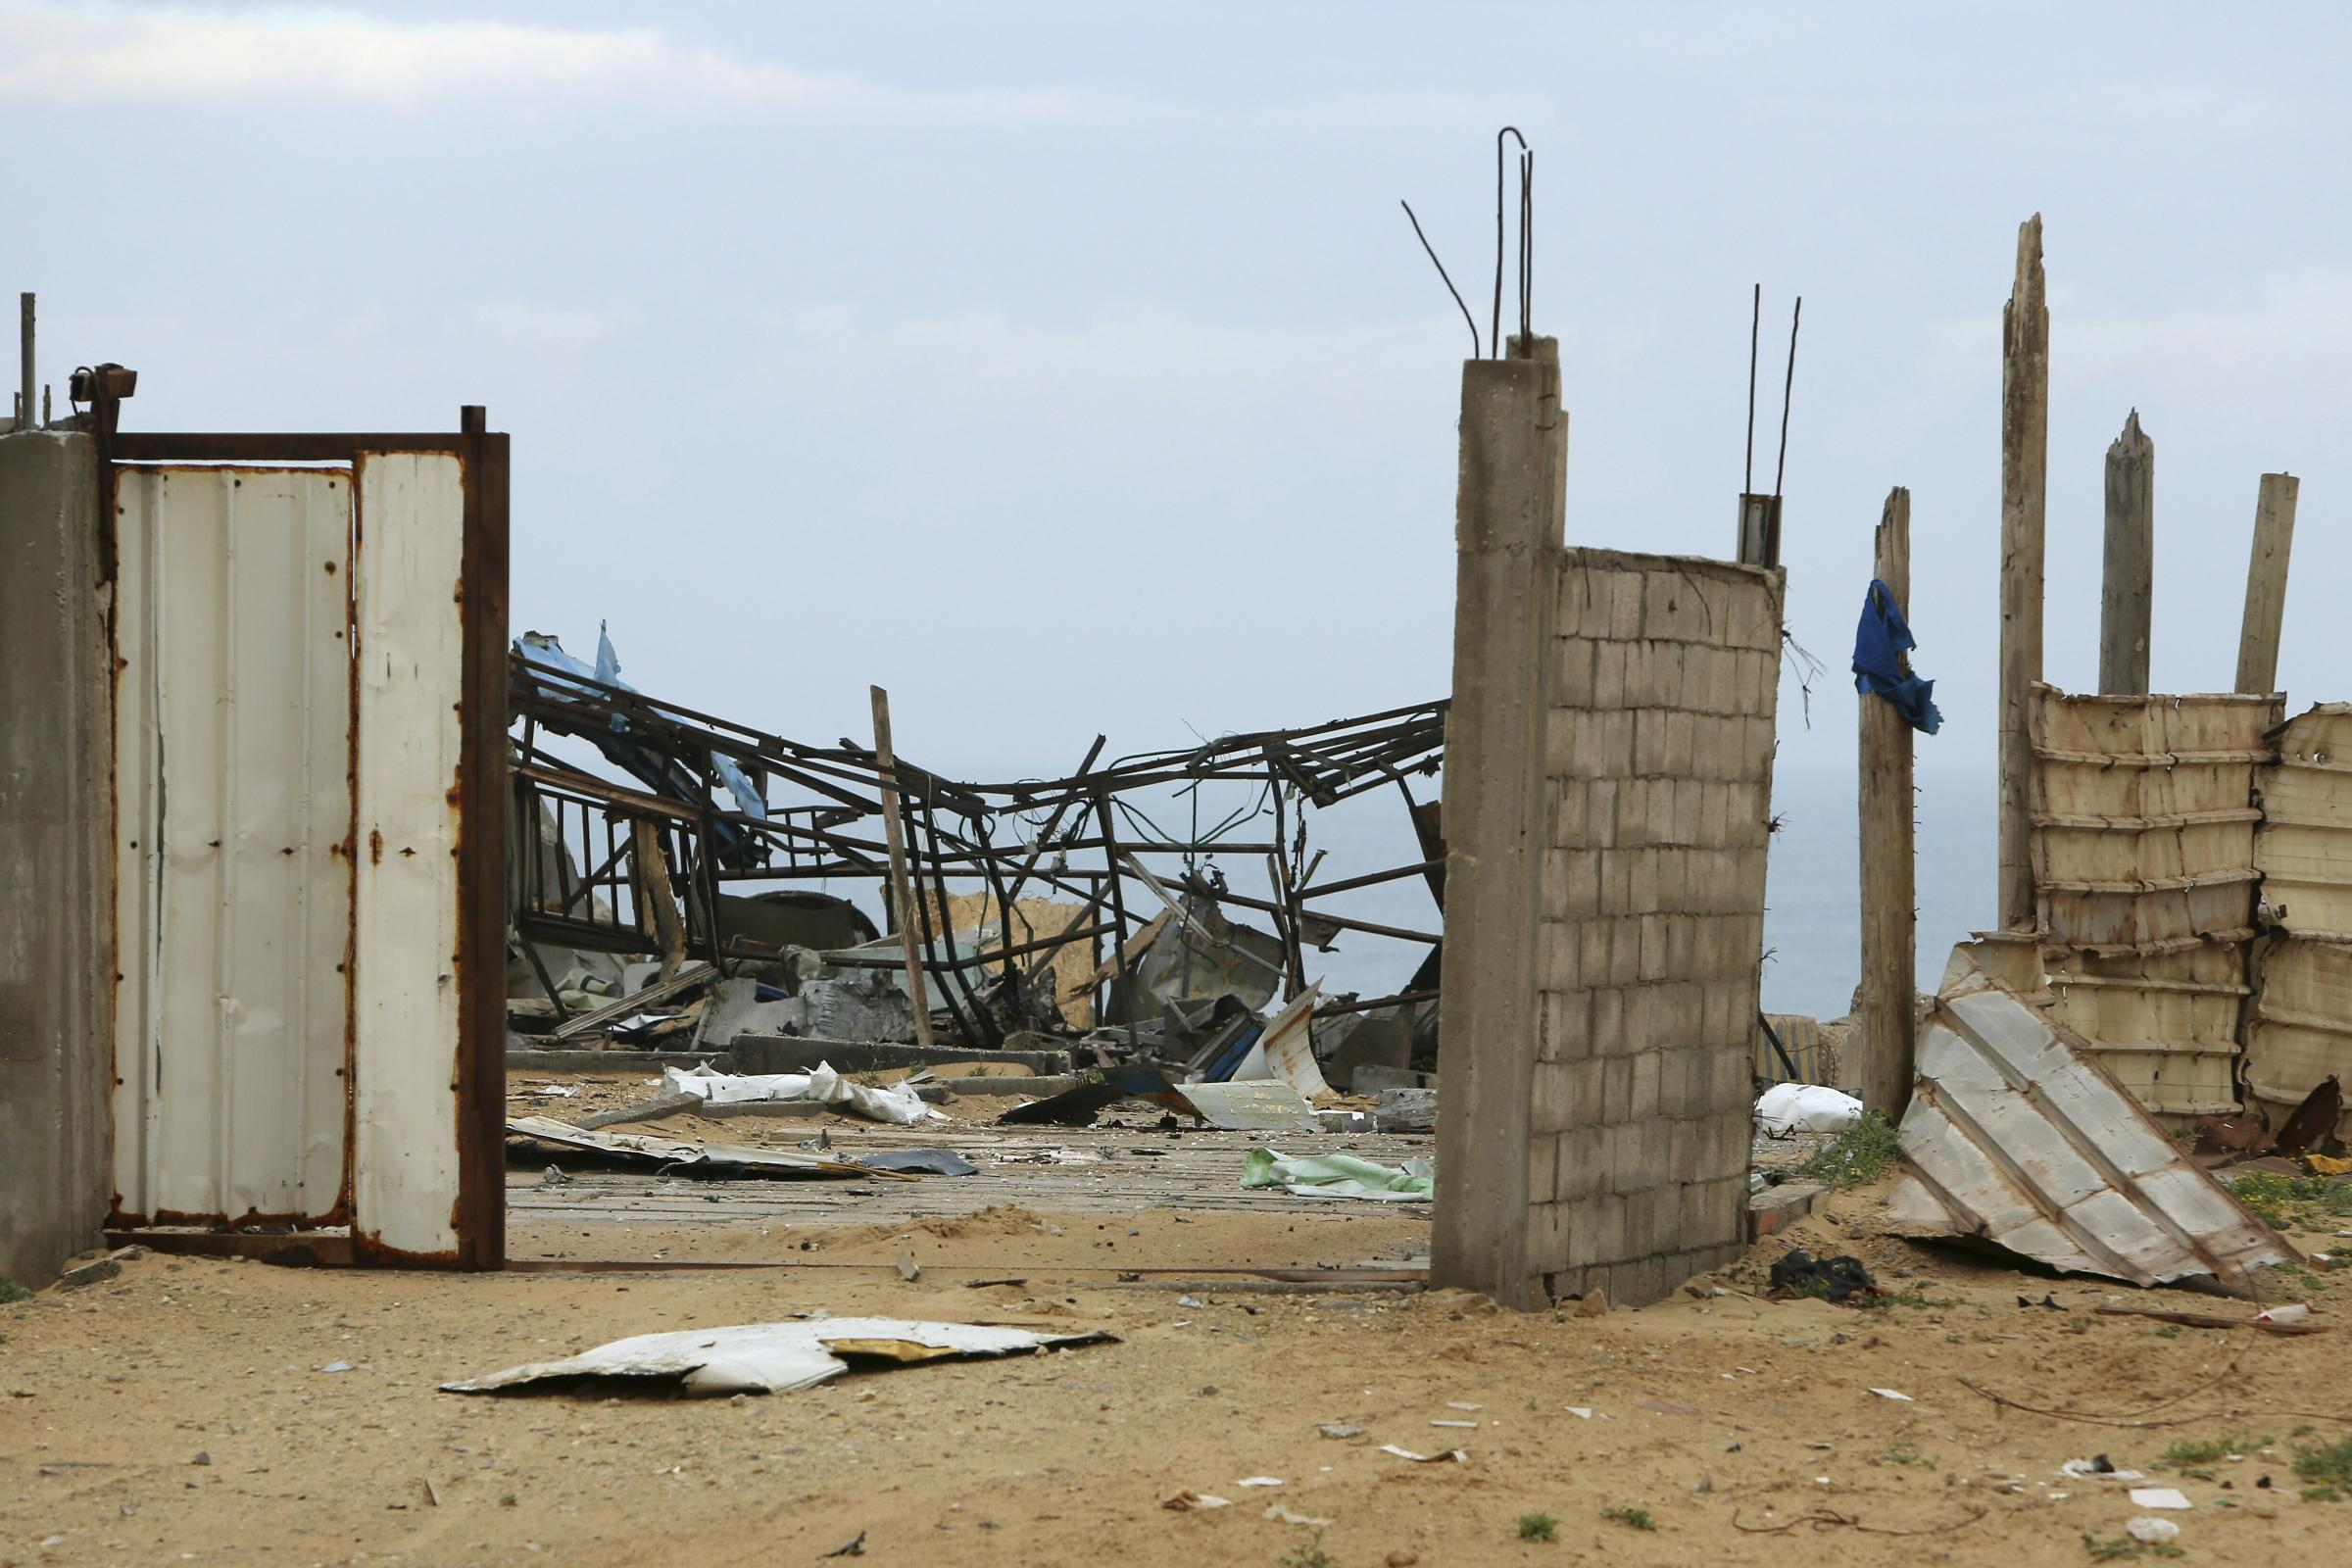 The wreckage of a Hamas military site in Gaza City